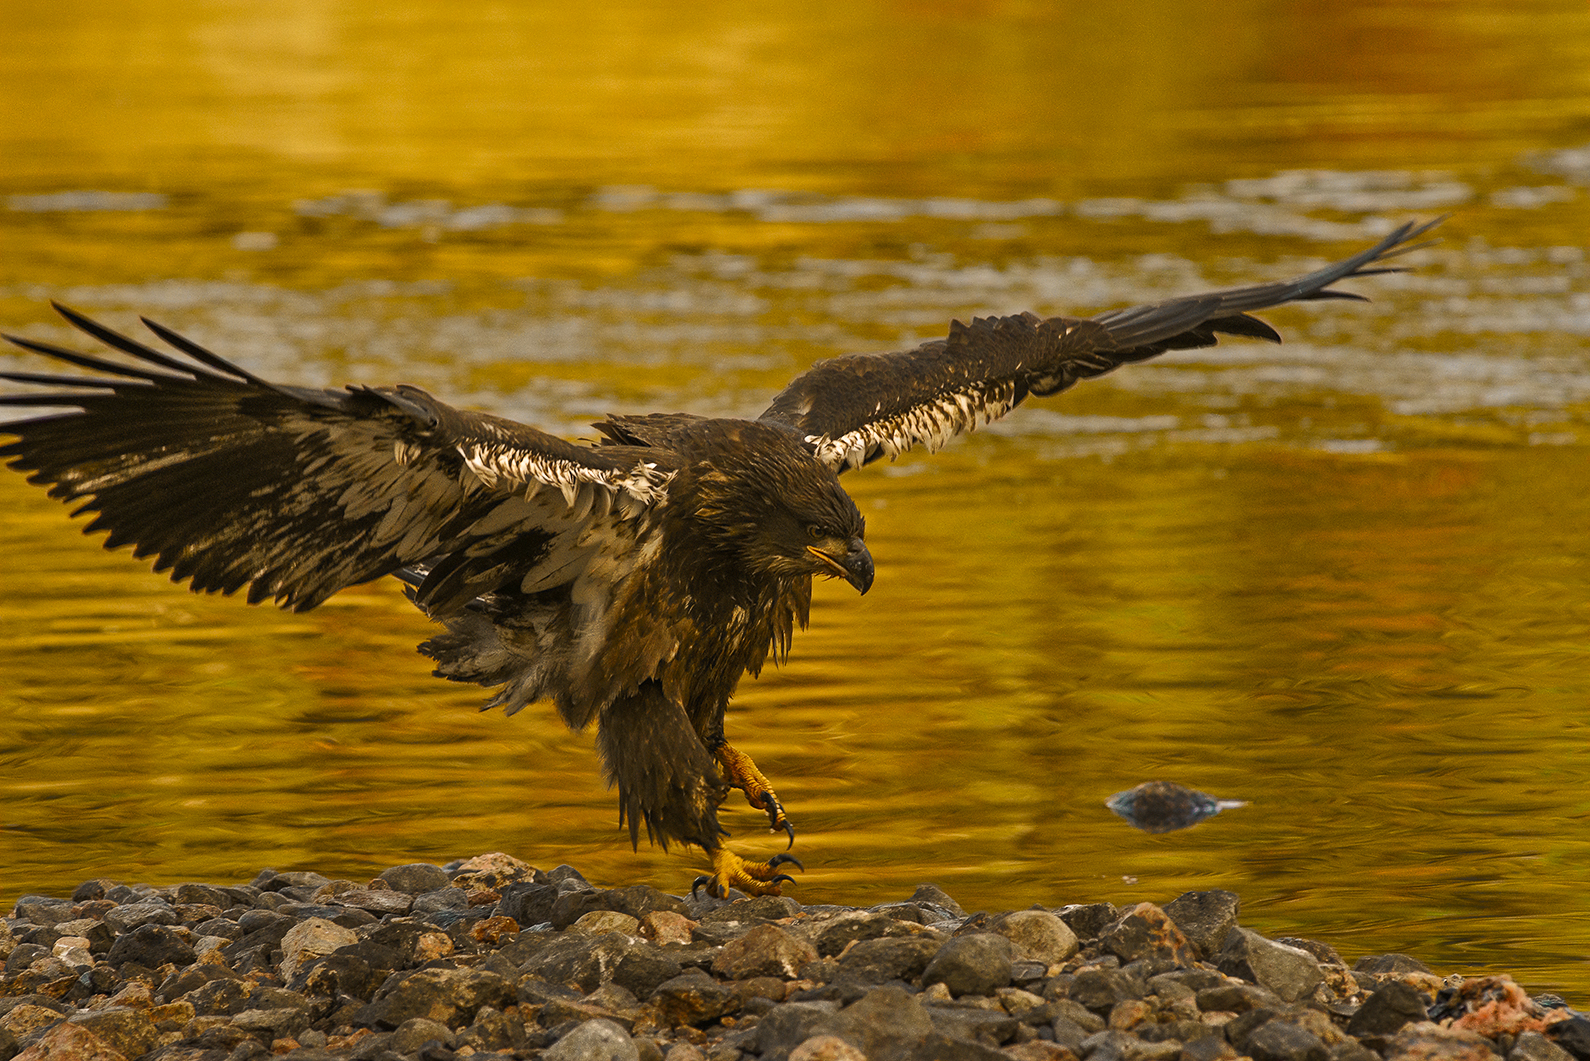 Juvenile bald eagle landing at sunset